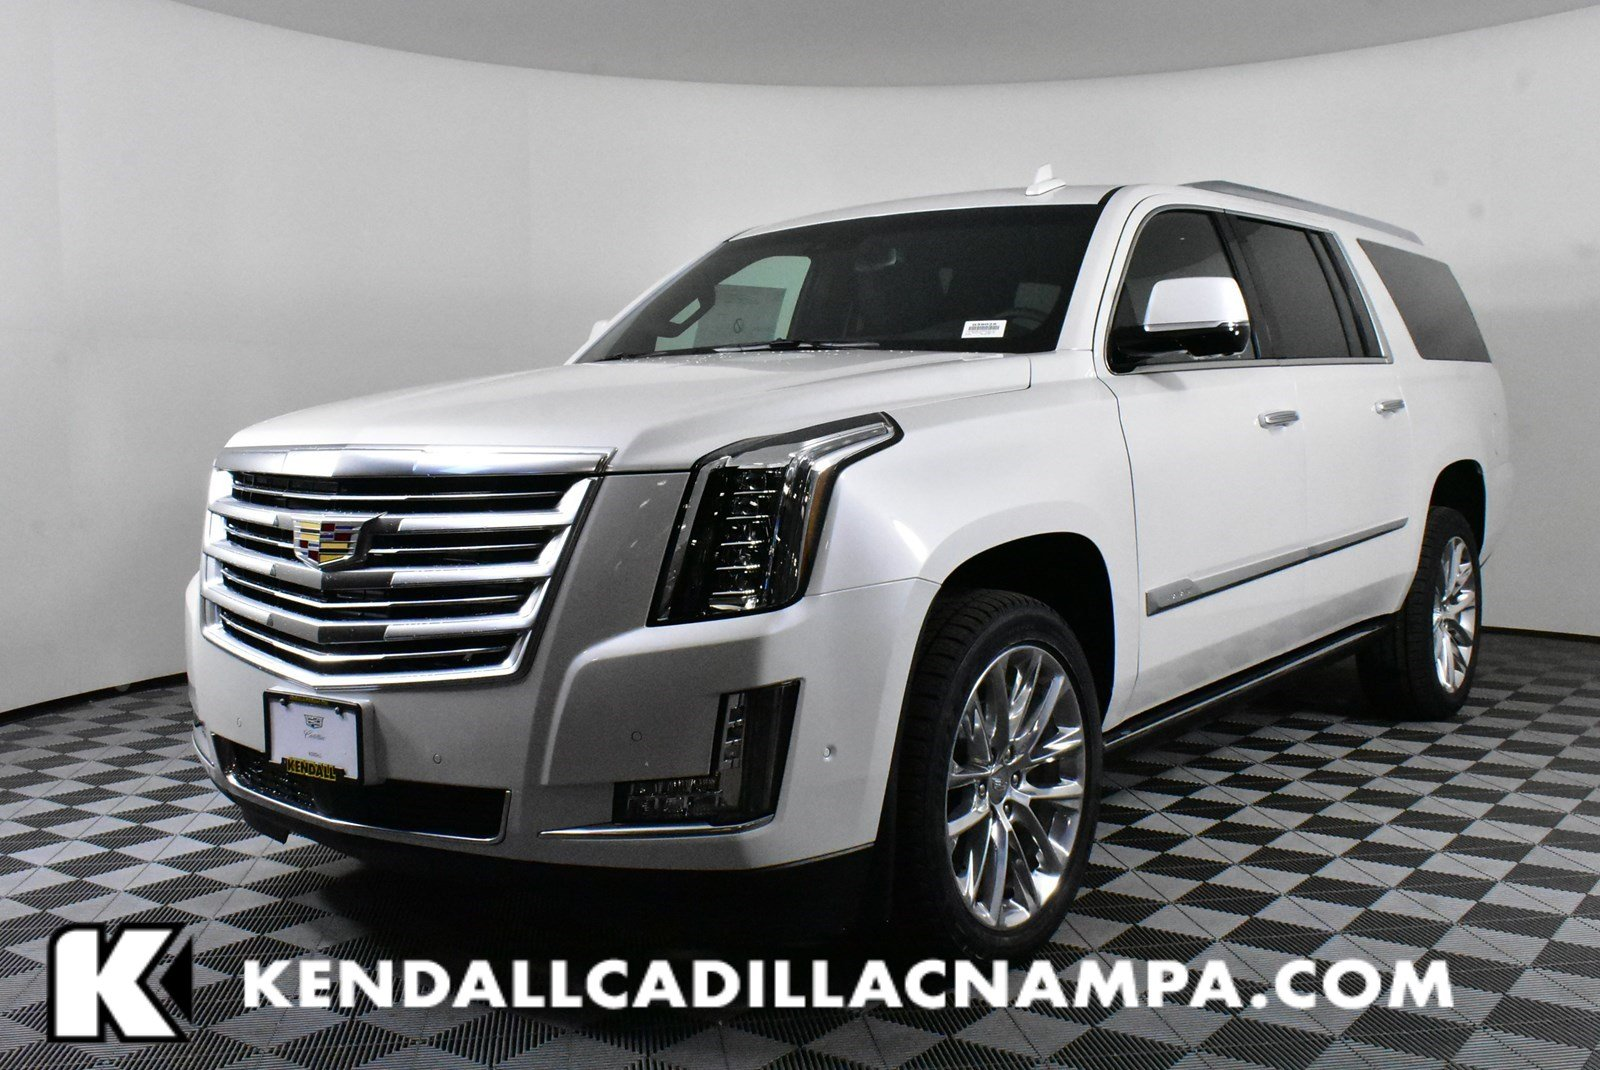 New 2019 Cadillac Escalade ESV Platinum 4WD In Nampa